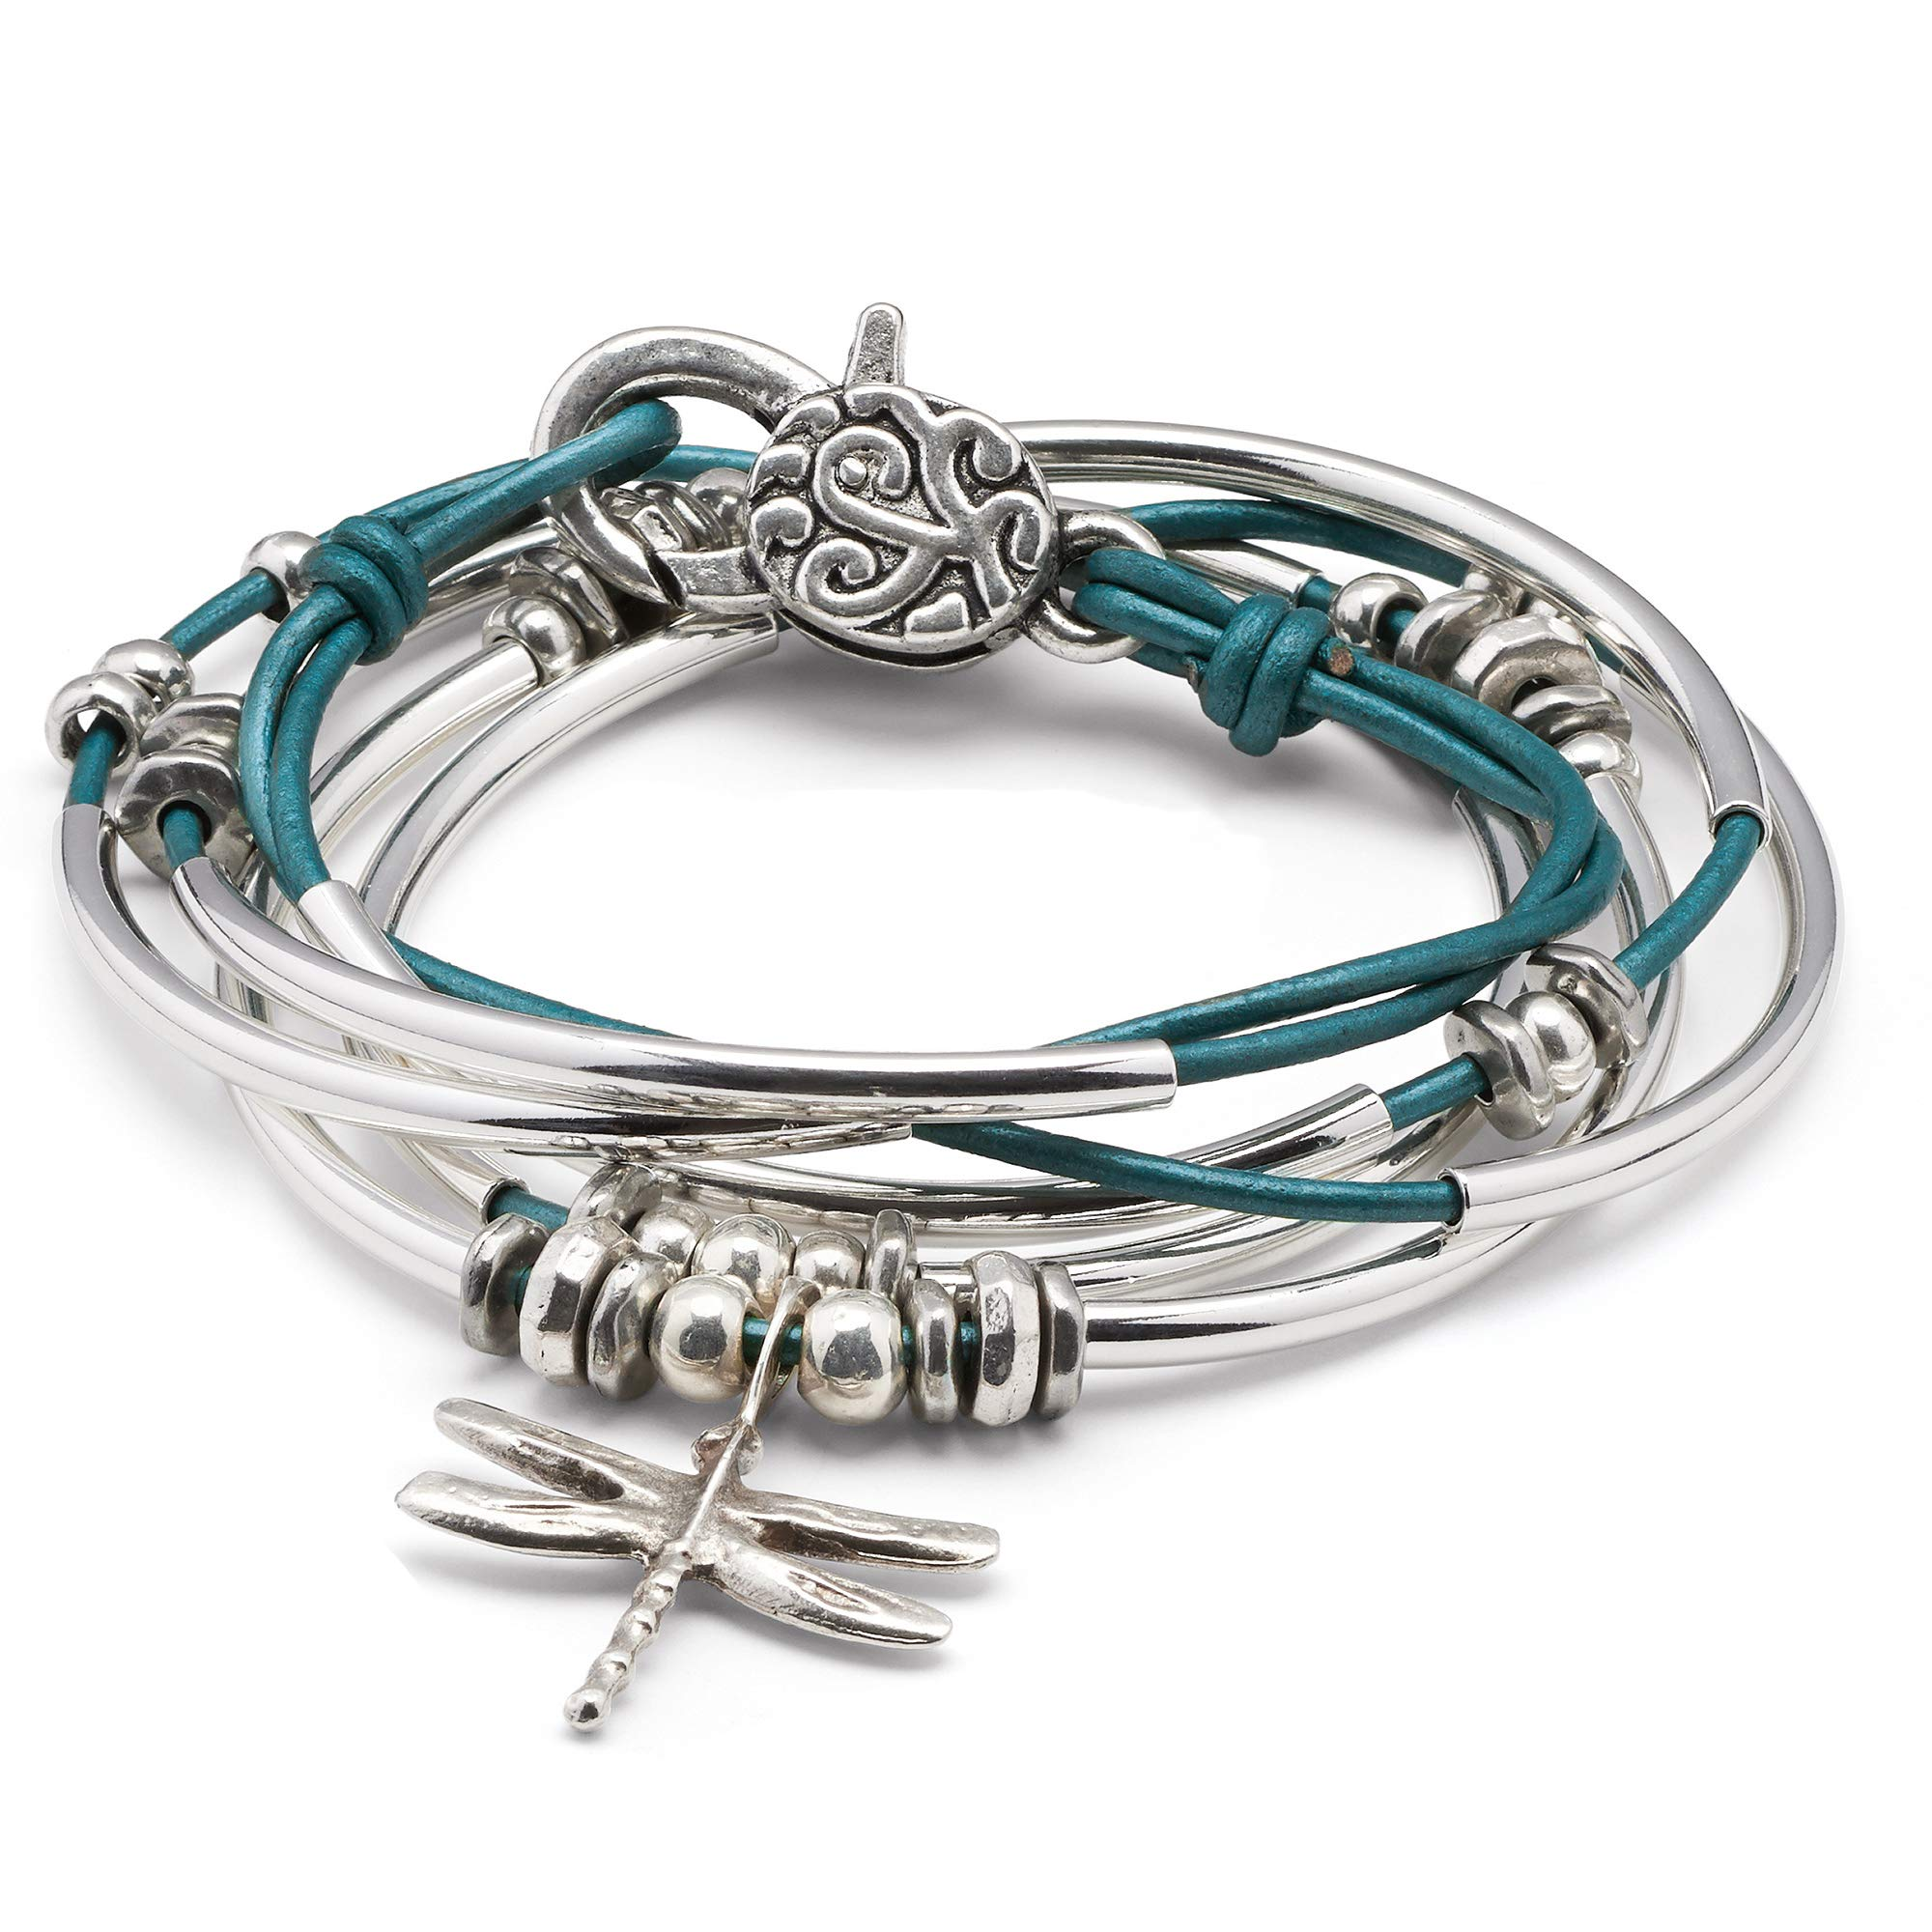 Lizzy James Dragonfly Charm Metallic Teal Leather Wrap Bracelet Necklace (XXLarge) by Lizzy James